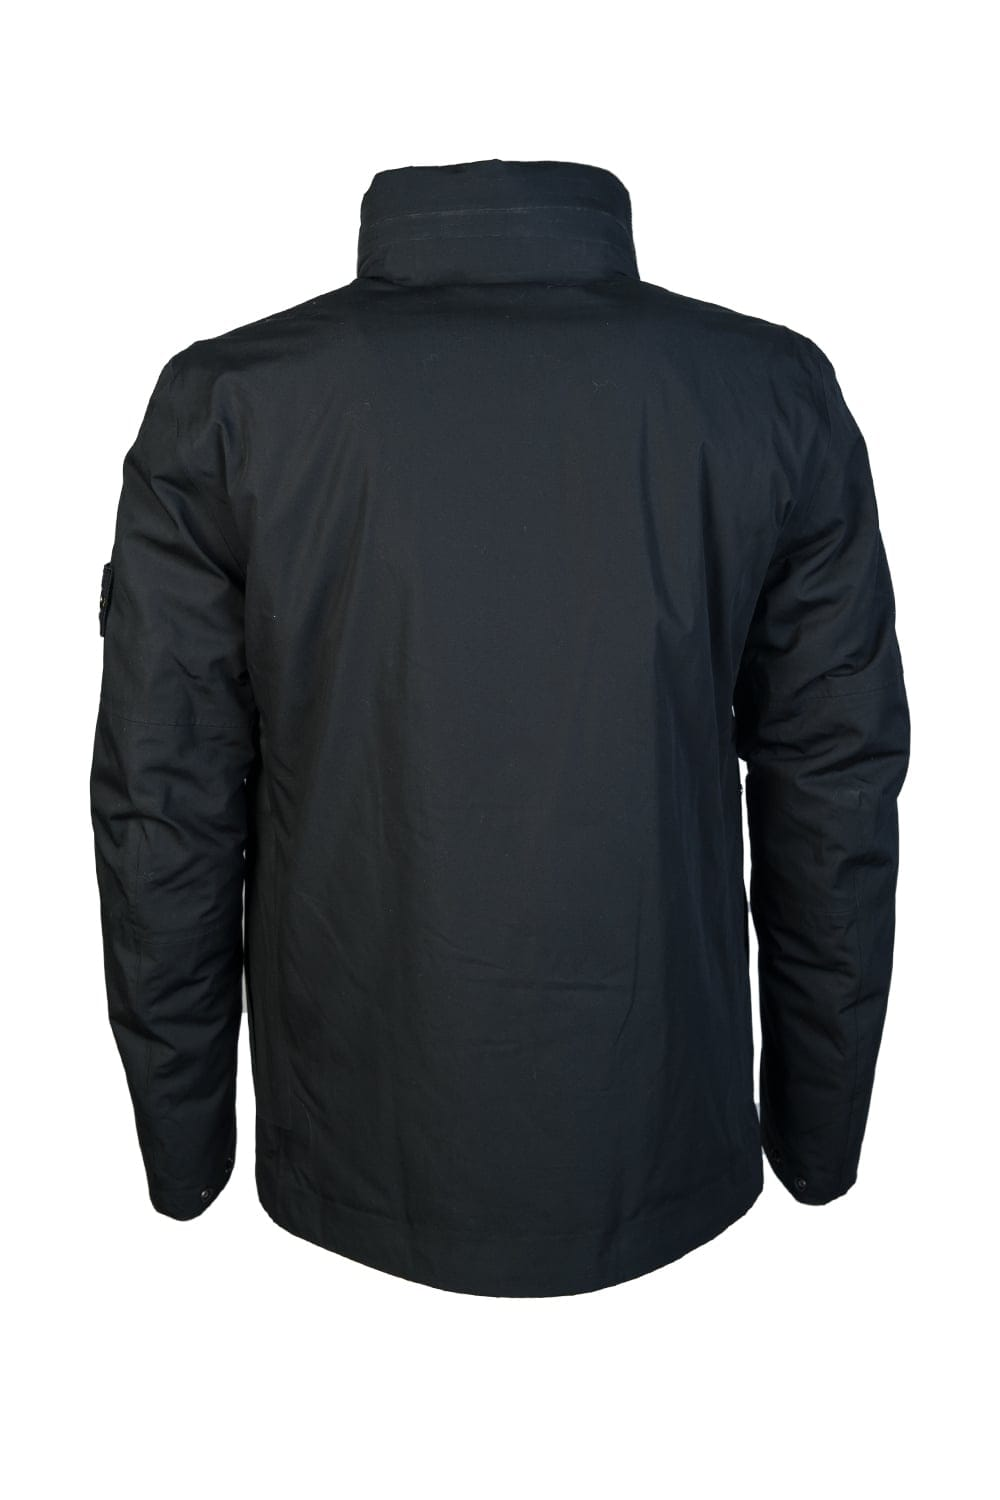 stone island jacket 651541525 stone island from sage clothing uk. Black Bedroom Furniture Sets. Home Design Ideas